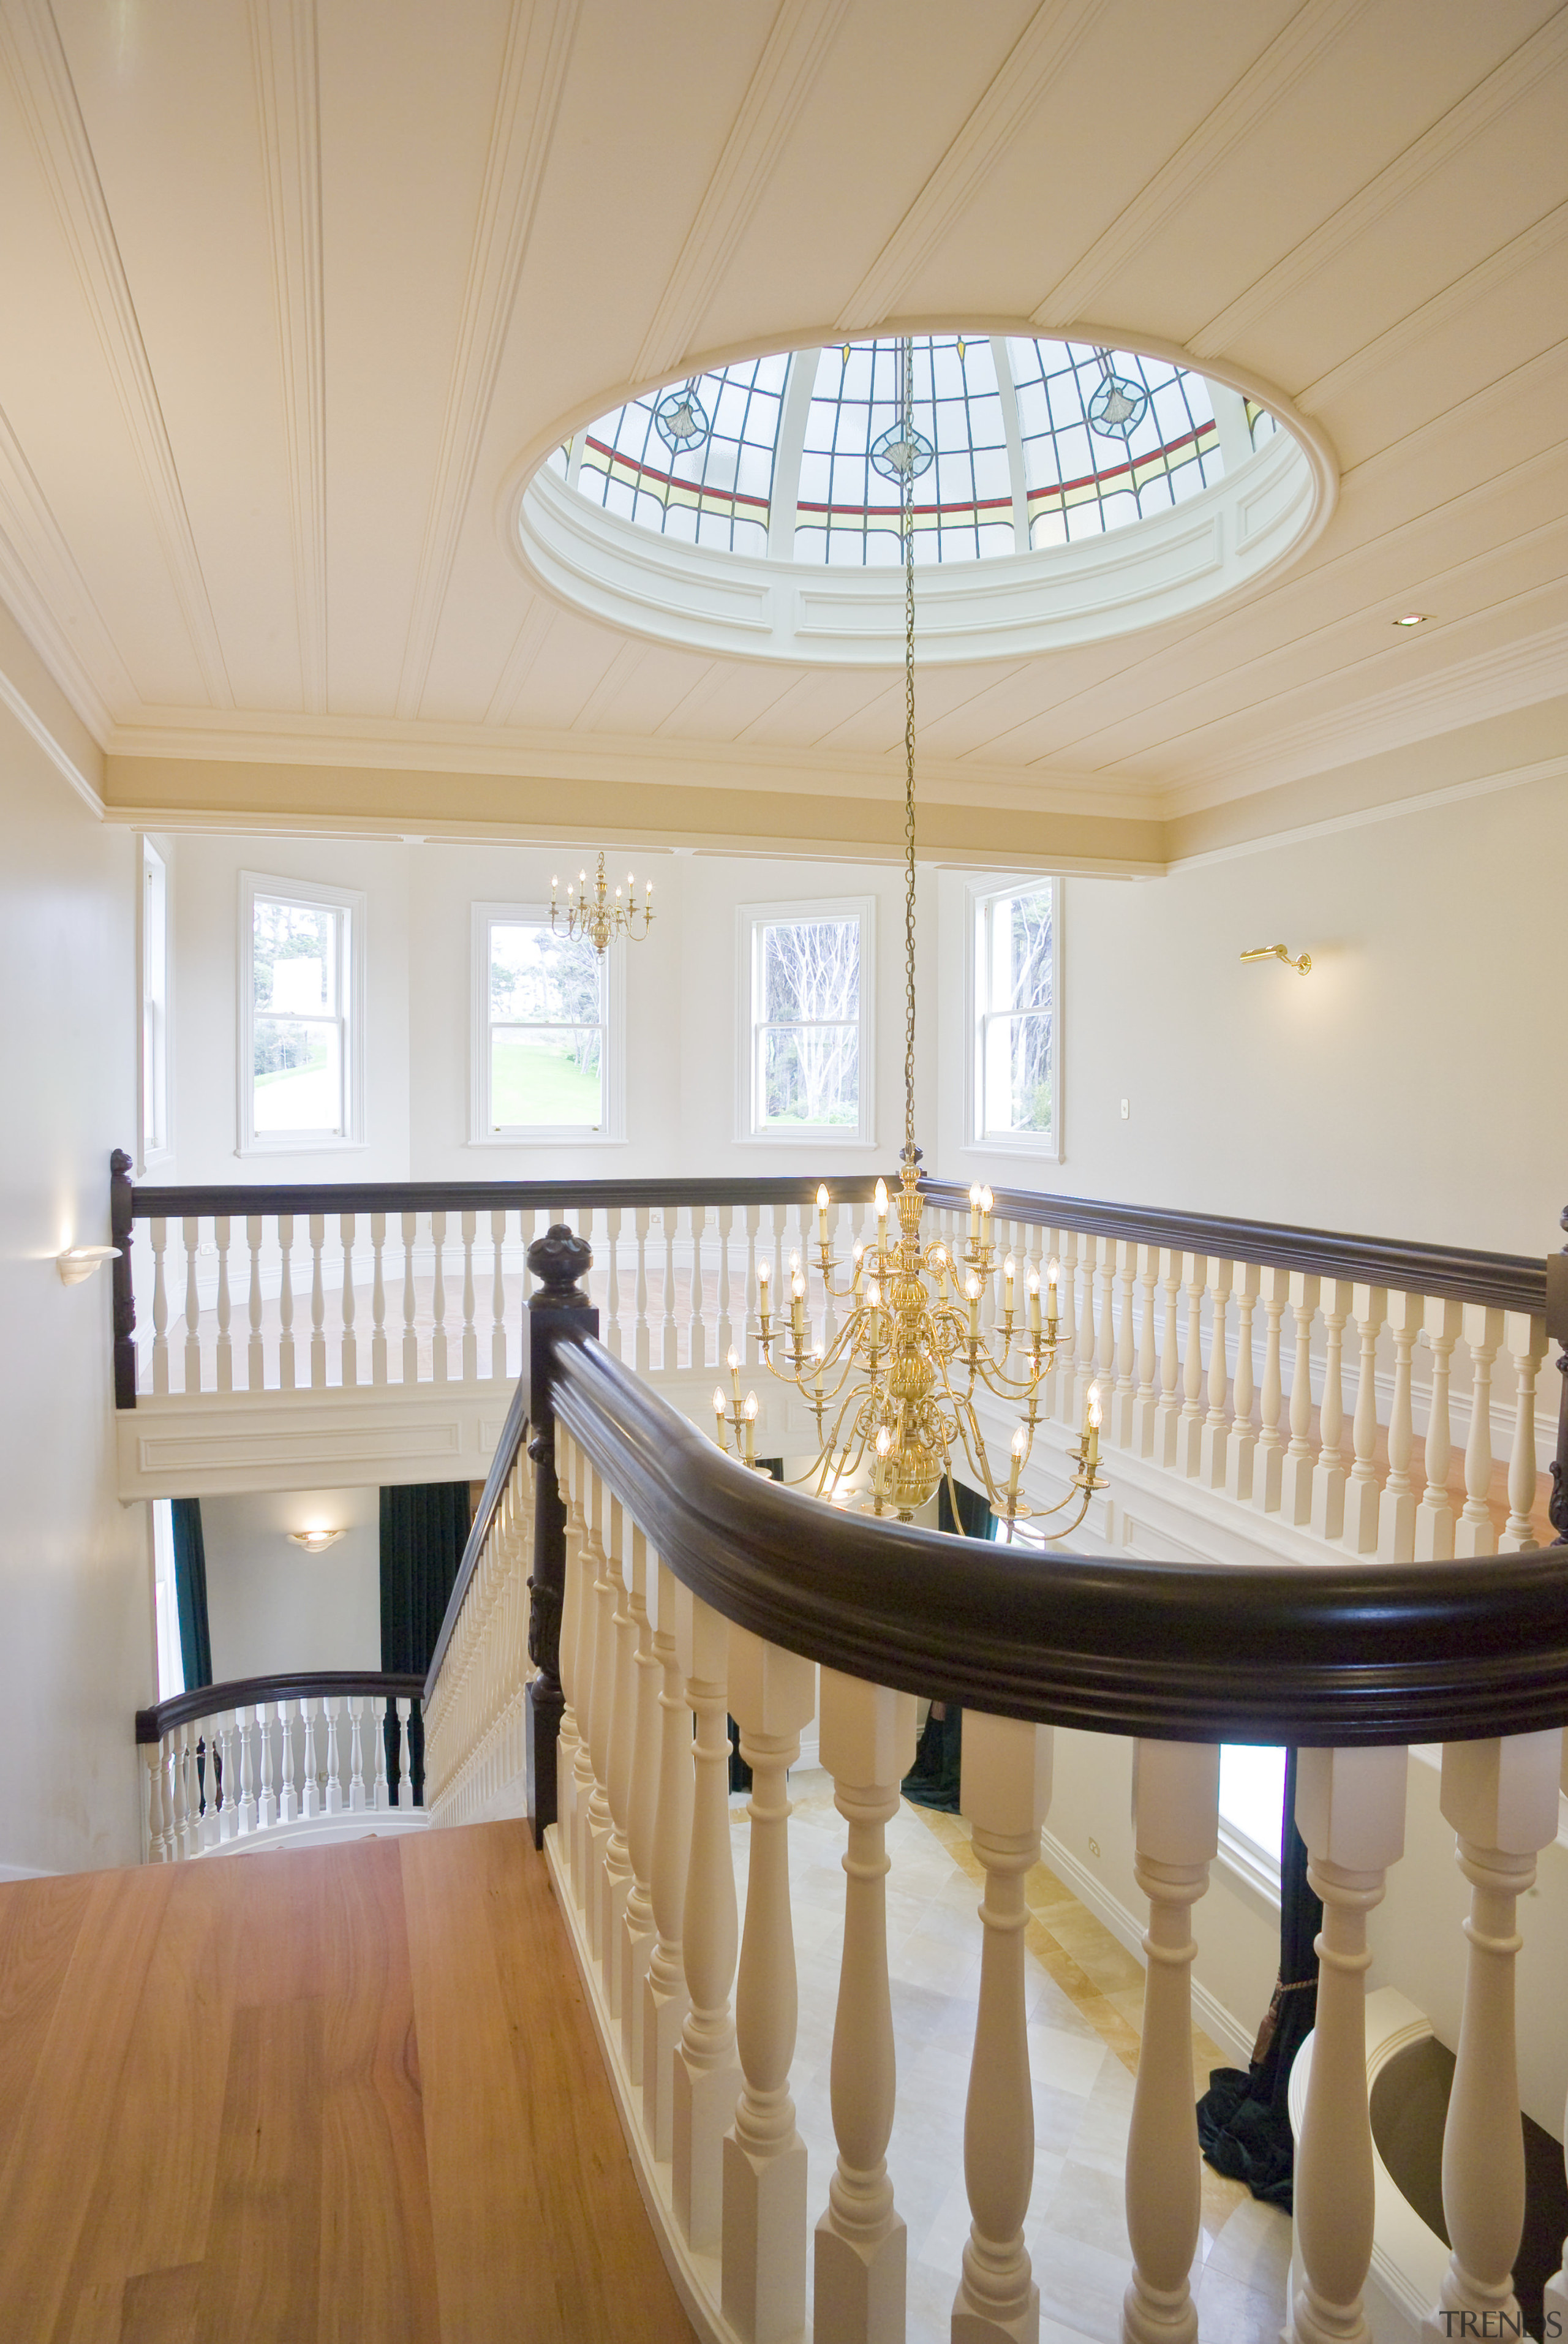 The architect and builder were able to source architecture, ceiling, daylighting, estate, floor, flooring, home, interior design, lobby, property, real estate, table, gray, orange